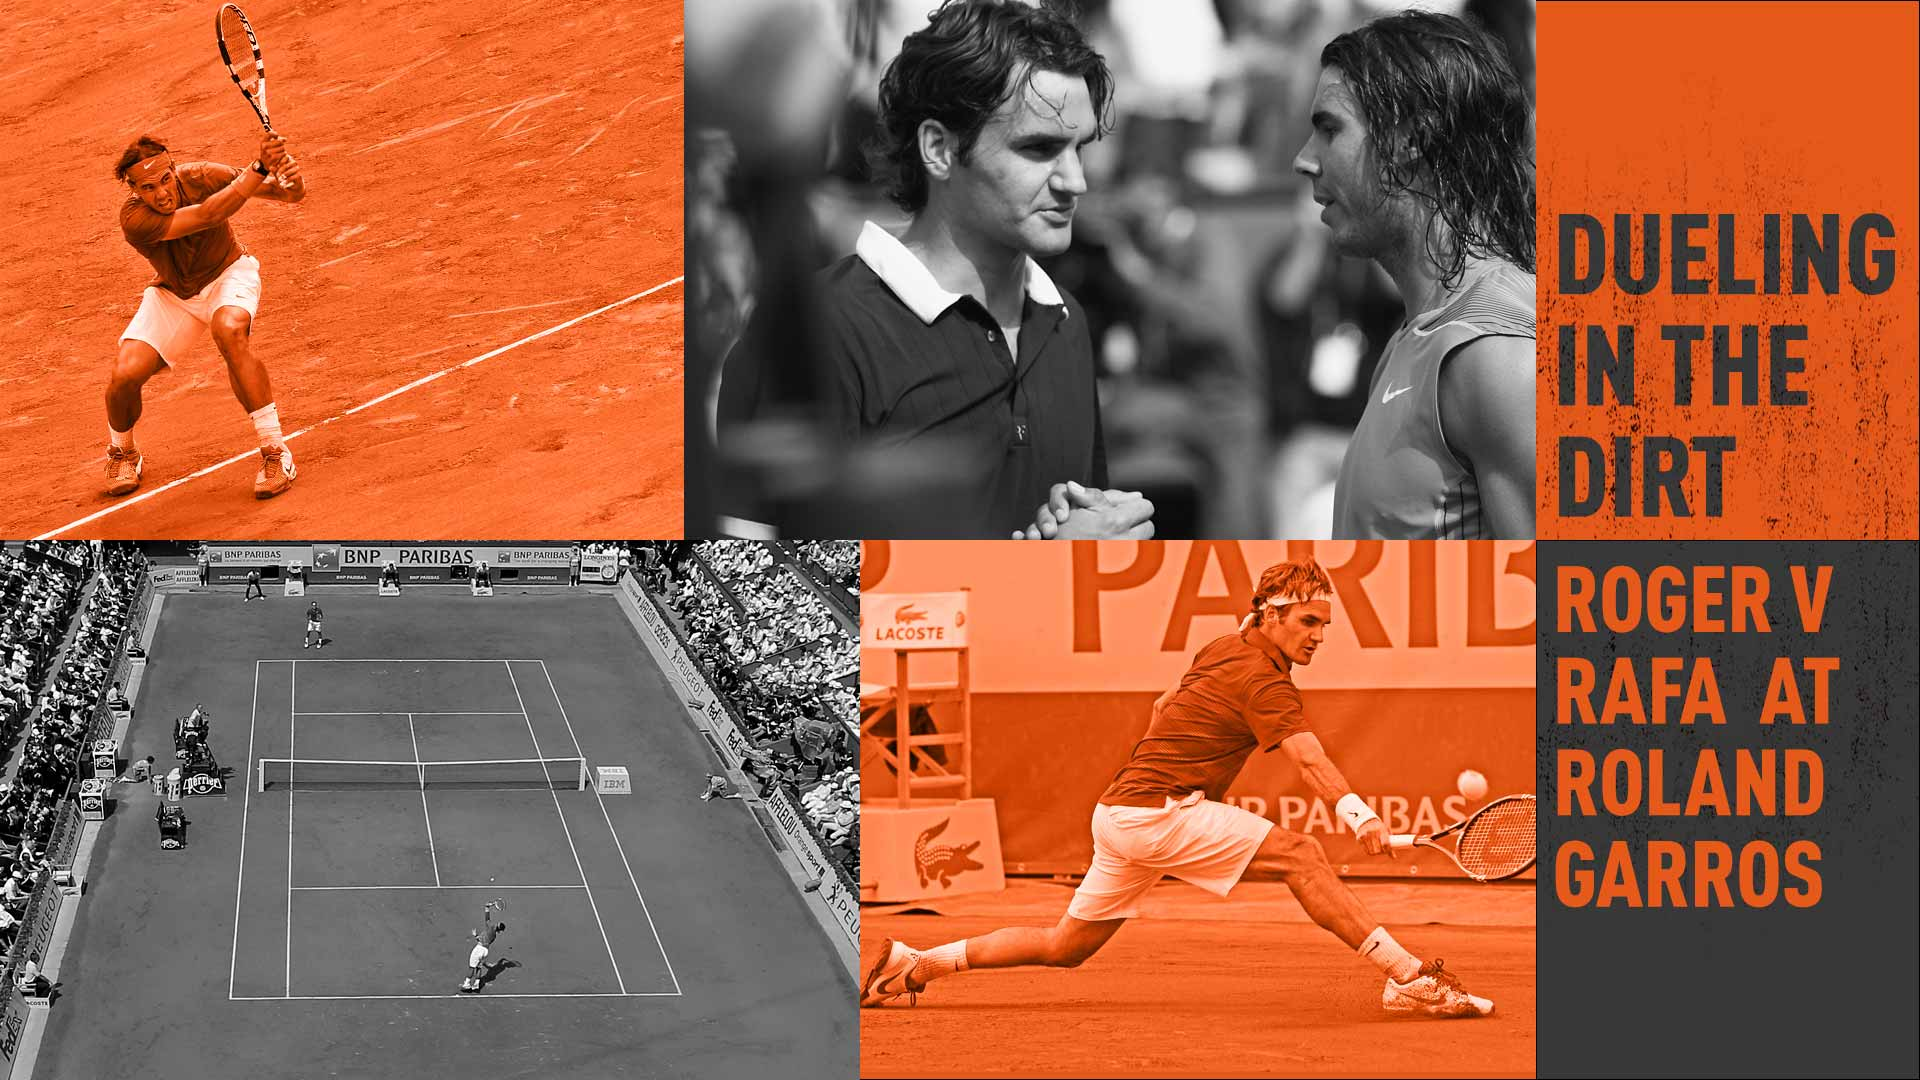 Rafael Nadal leads Roger Federer 6-0 in ATP Head2Head encounters at Roland Garros.